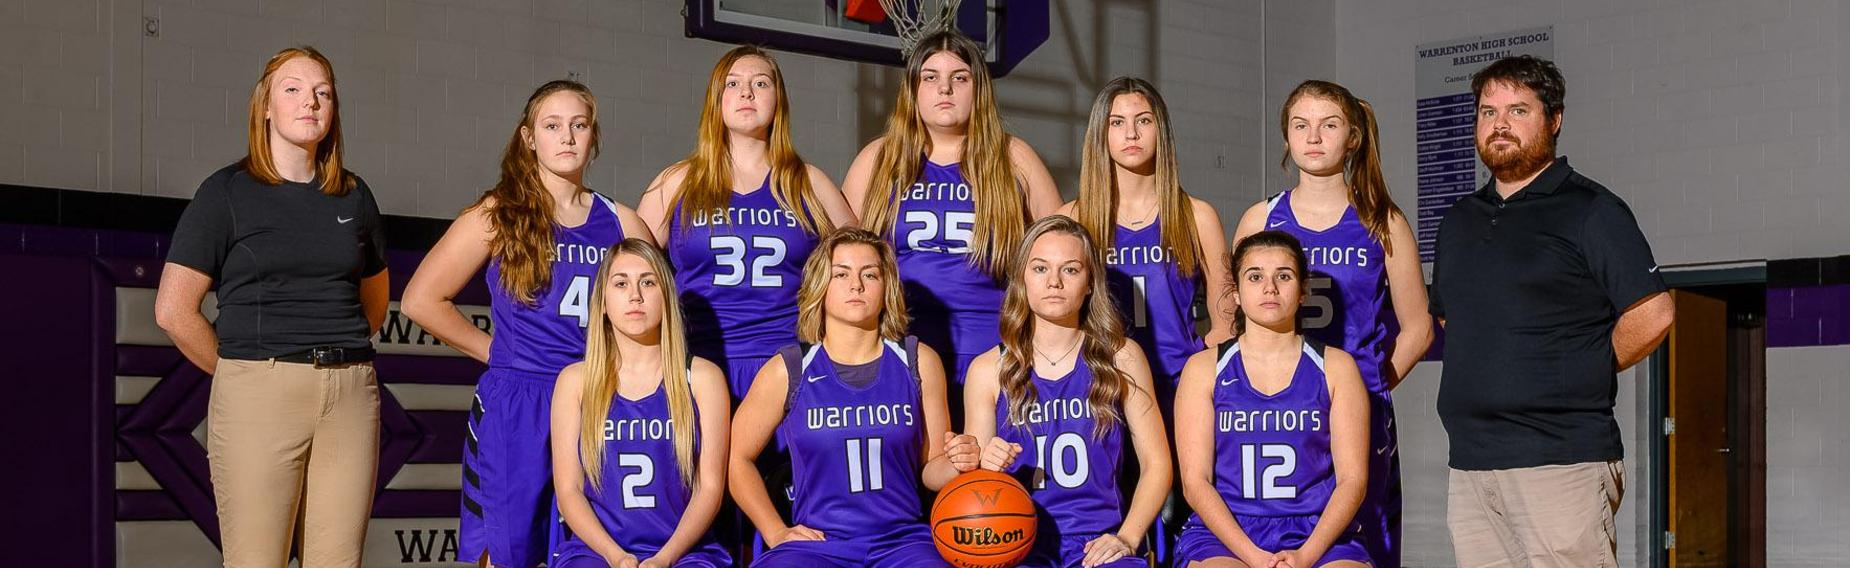 Girl's Basketball Team Photo